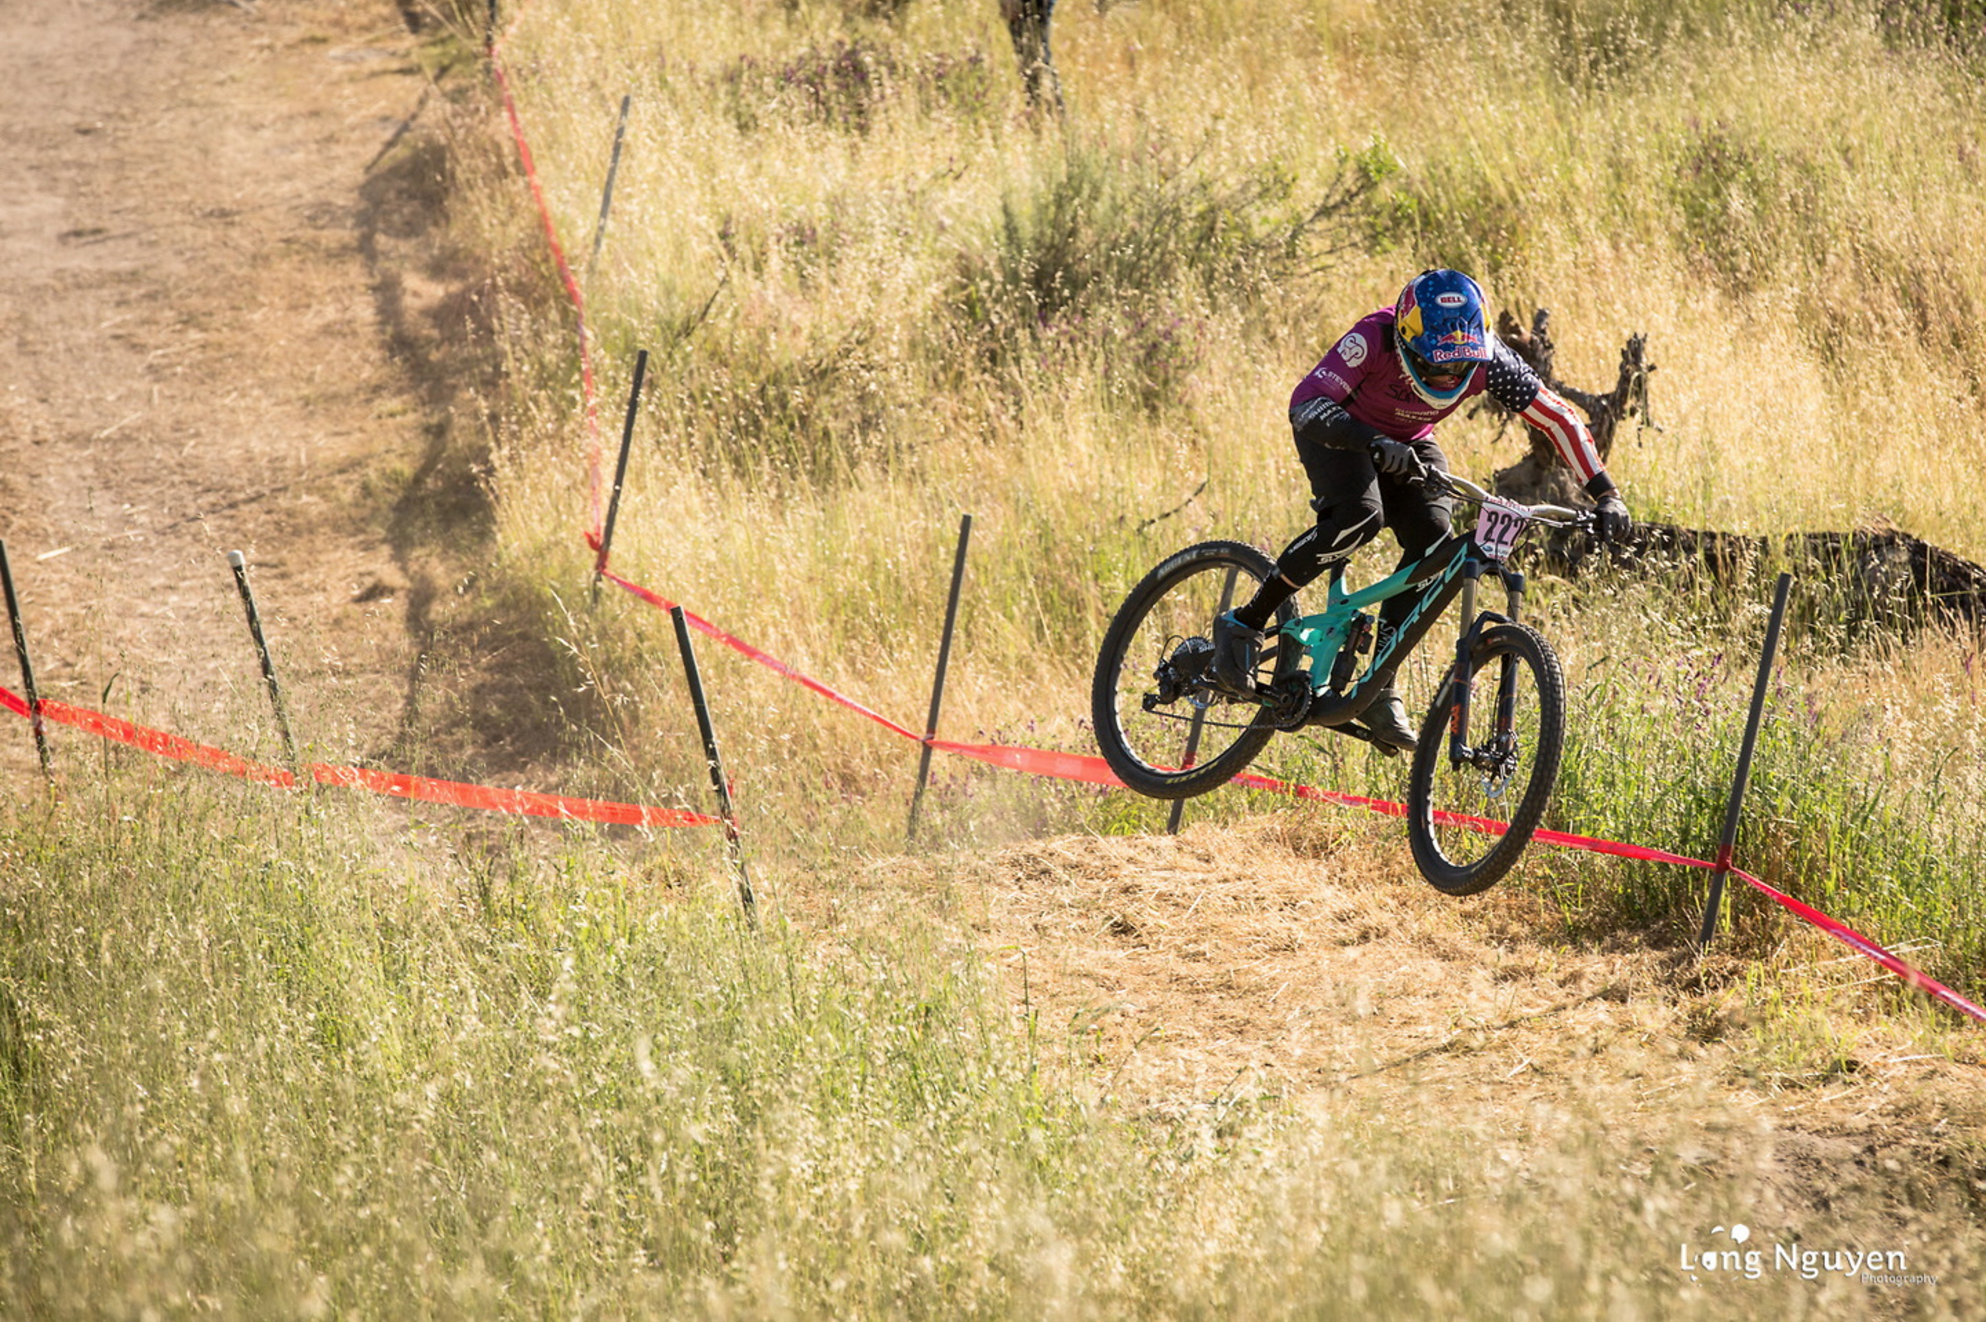 DH action- Photo Long Nguyen